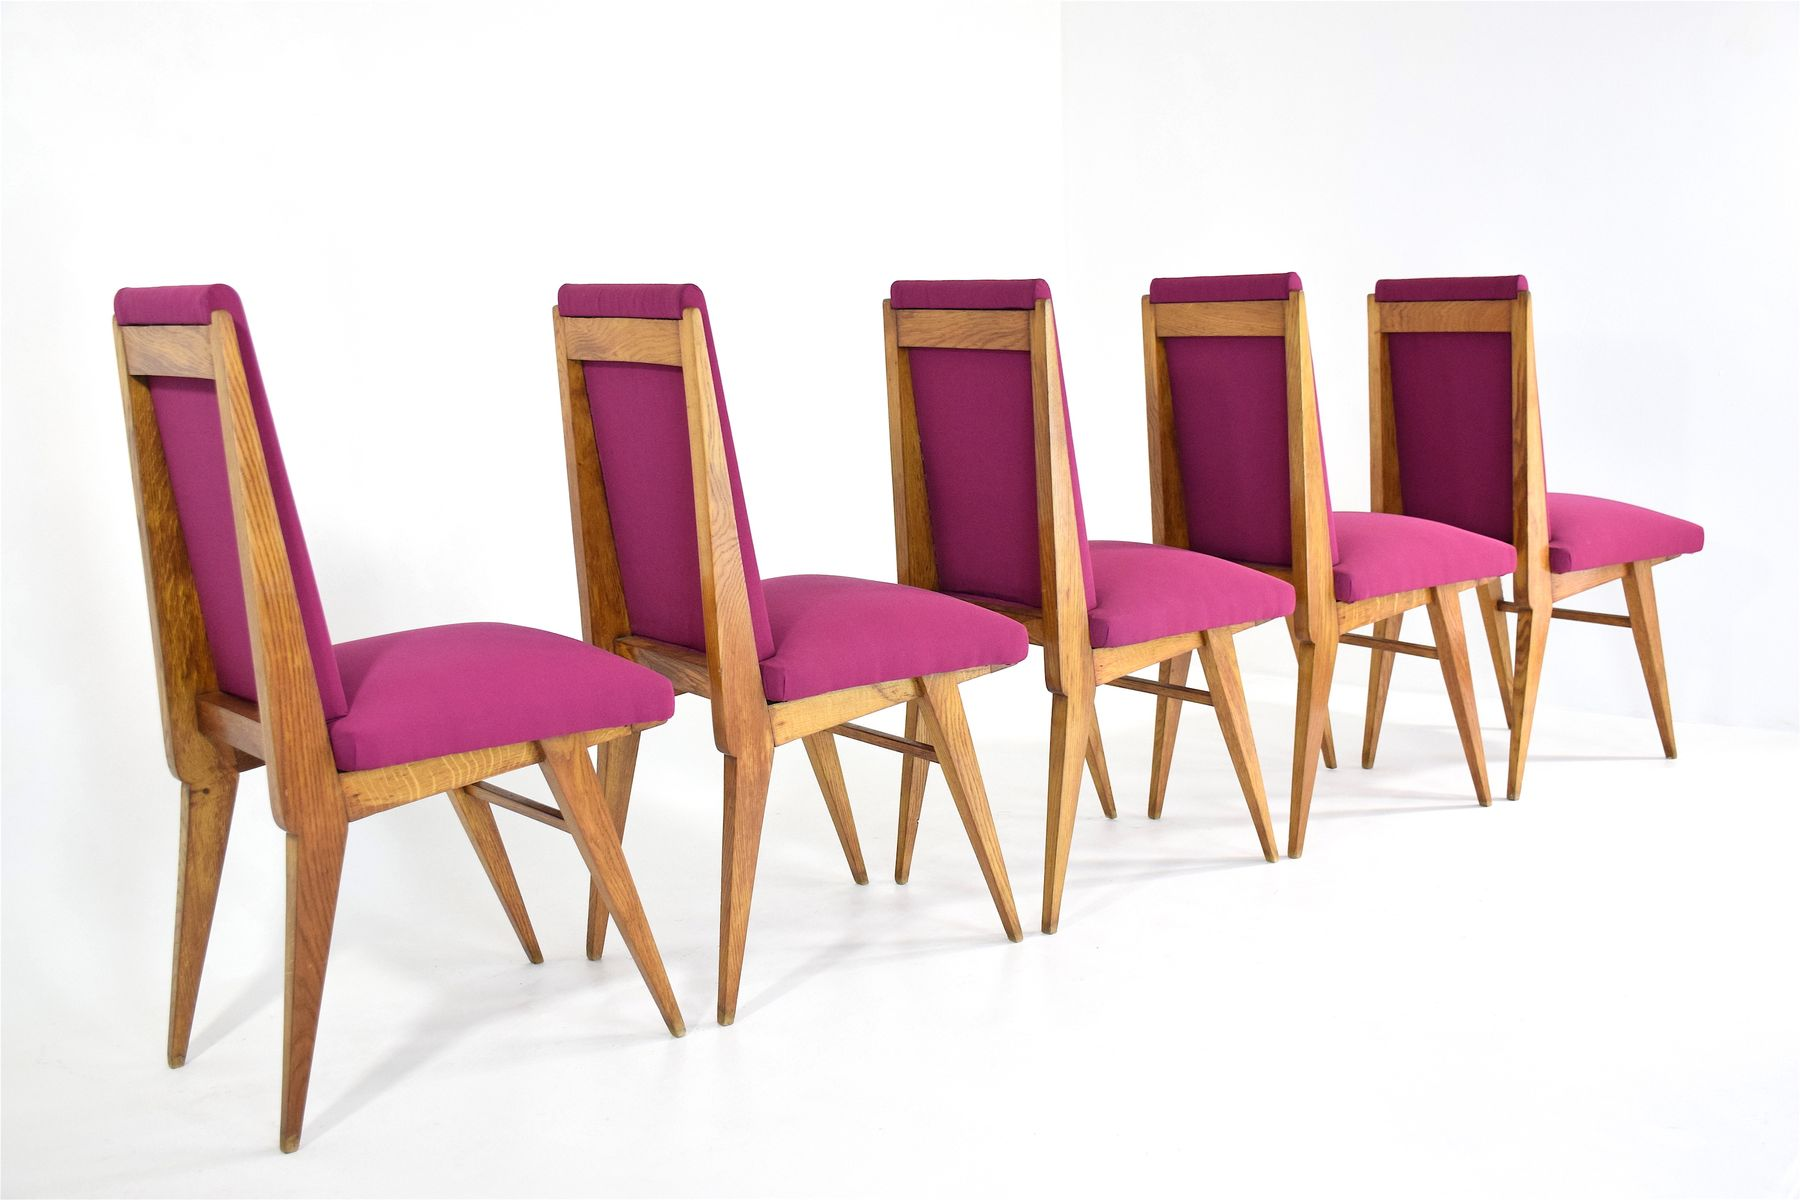 furniture art deco style. Vintage French Art Deco Style Dining Chairs, Set Of 5 Furniture O